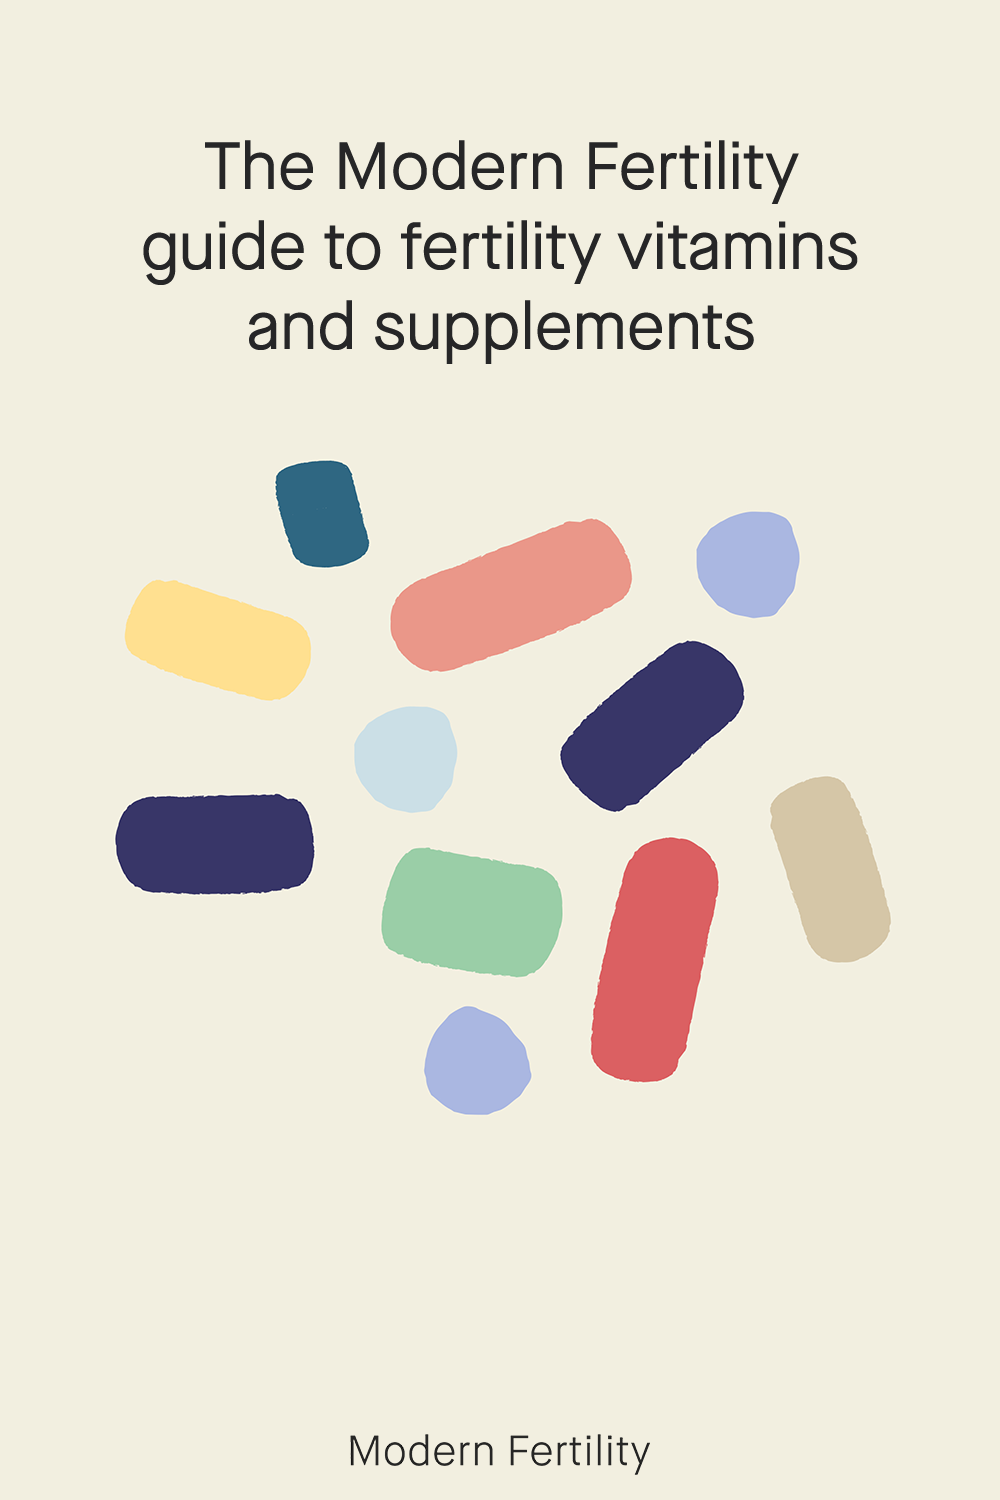 The Modern Guide To Prenatal Vitamins And Fertility Supplements In 2020 Fertility Supplements Fertility Vitamins Fertility